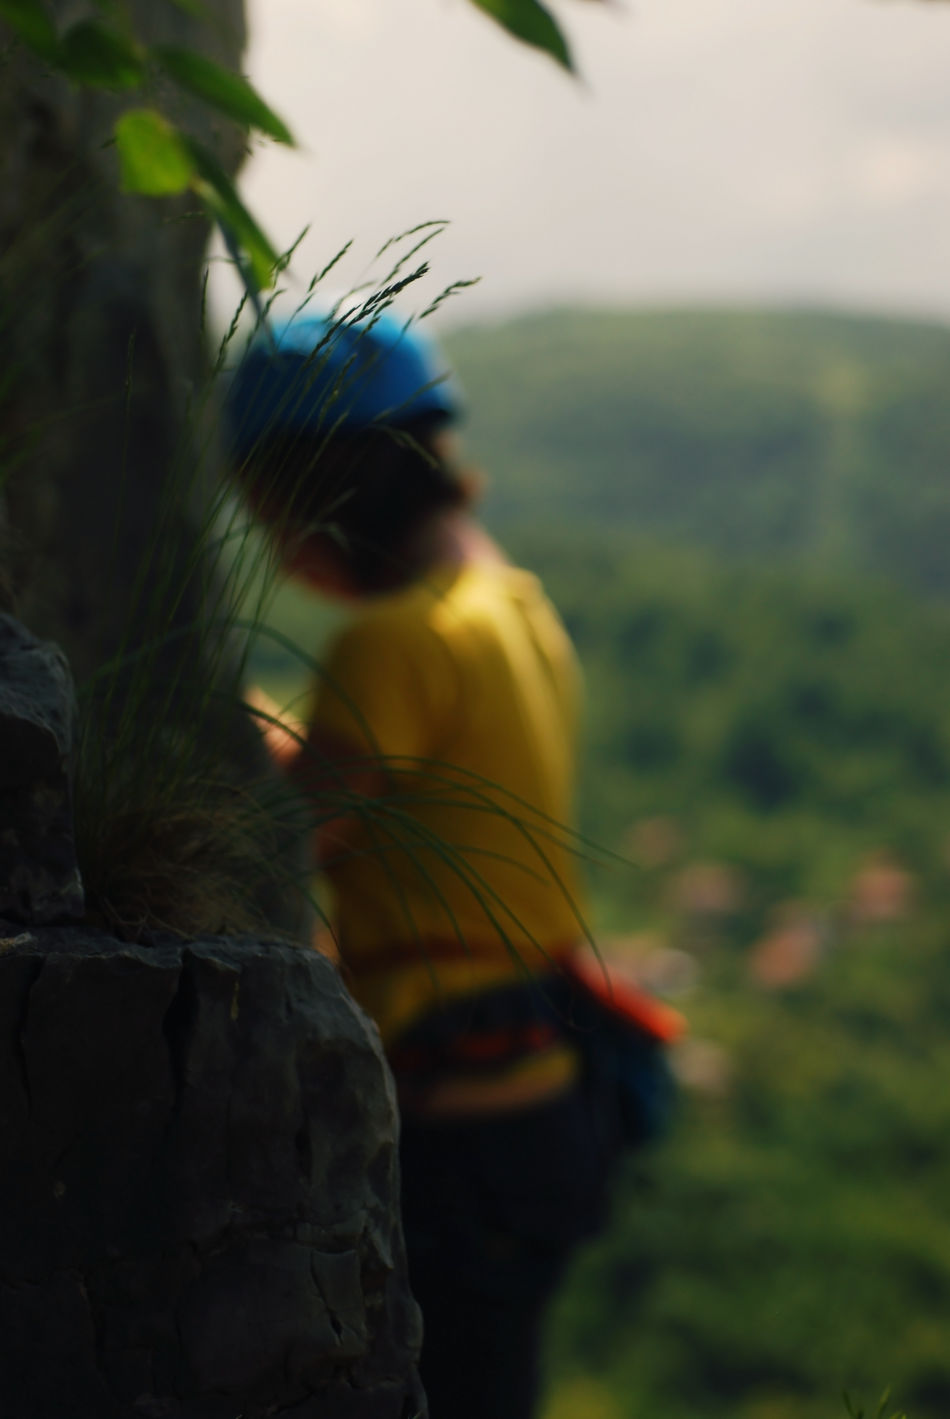 Blurred background of a climbing woman with helmet. Activity Adventure Adventure Time Altitude Backdrop Background Blur Blurred Blurred Background Blurry Cliff Climbing Defocused Female Lifestyle Light And Shadow Mountainclimbing Nature Outdoors Rockclimber RockClimbing Sport Steep Sunset Women